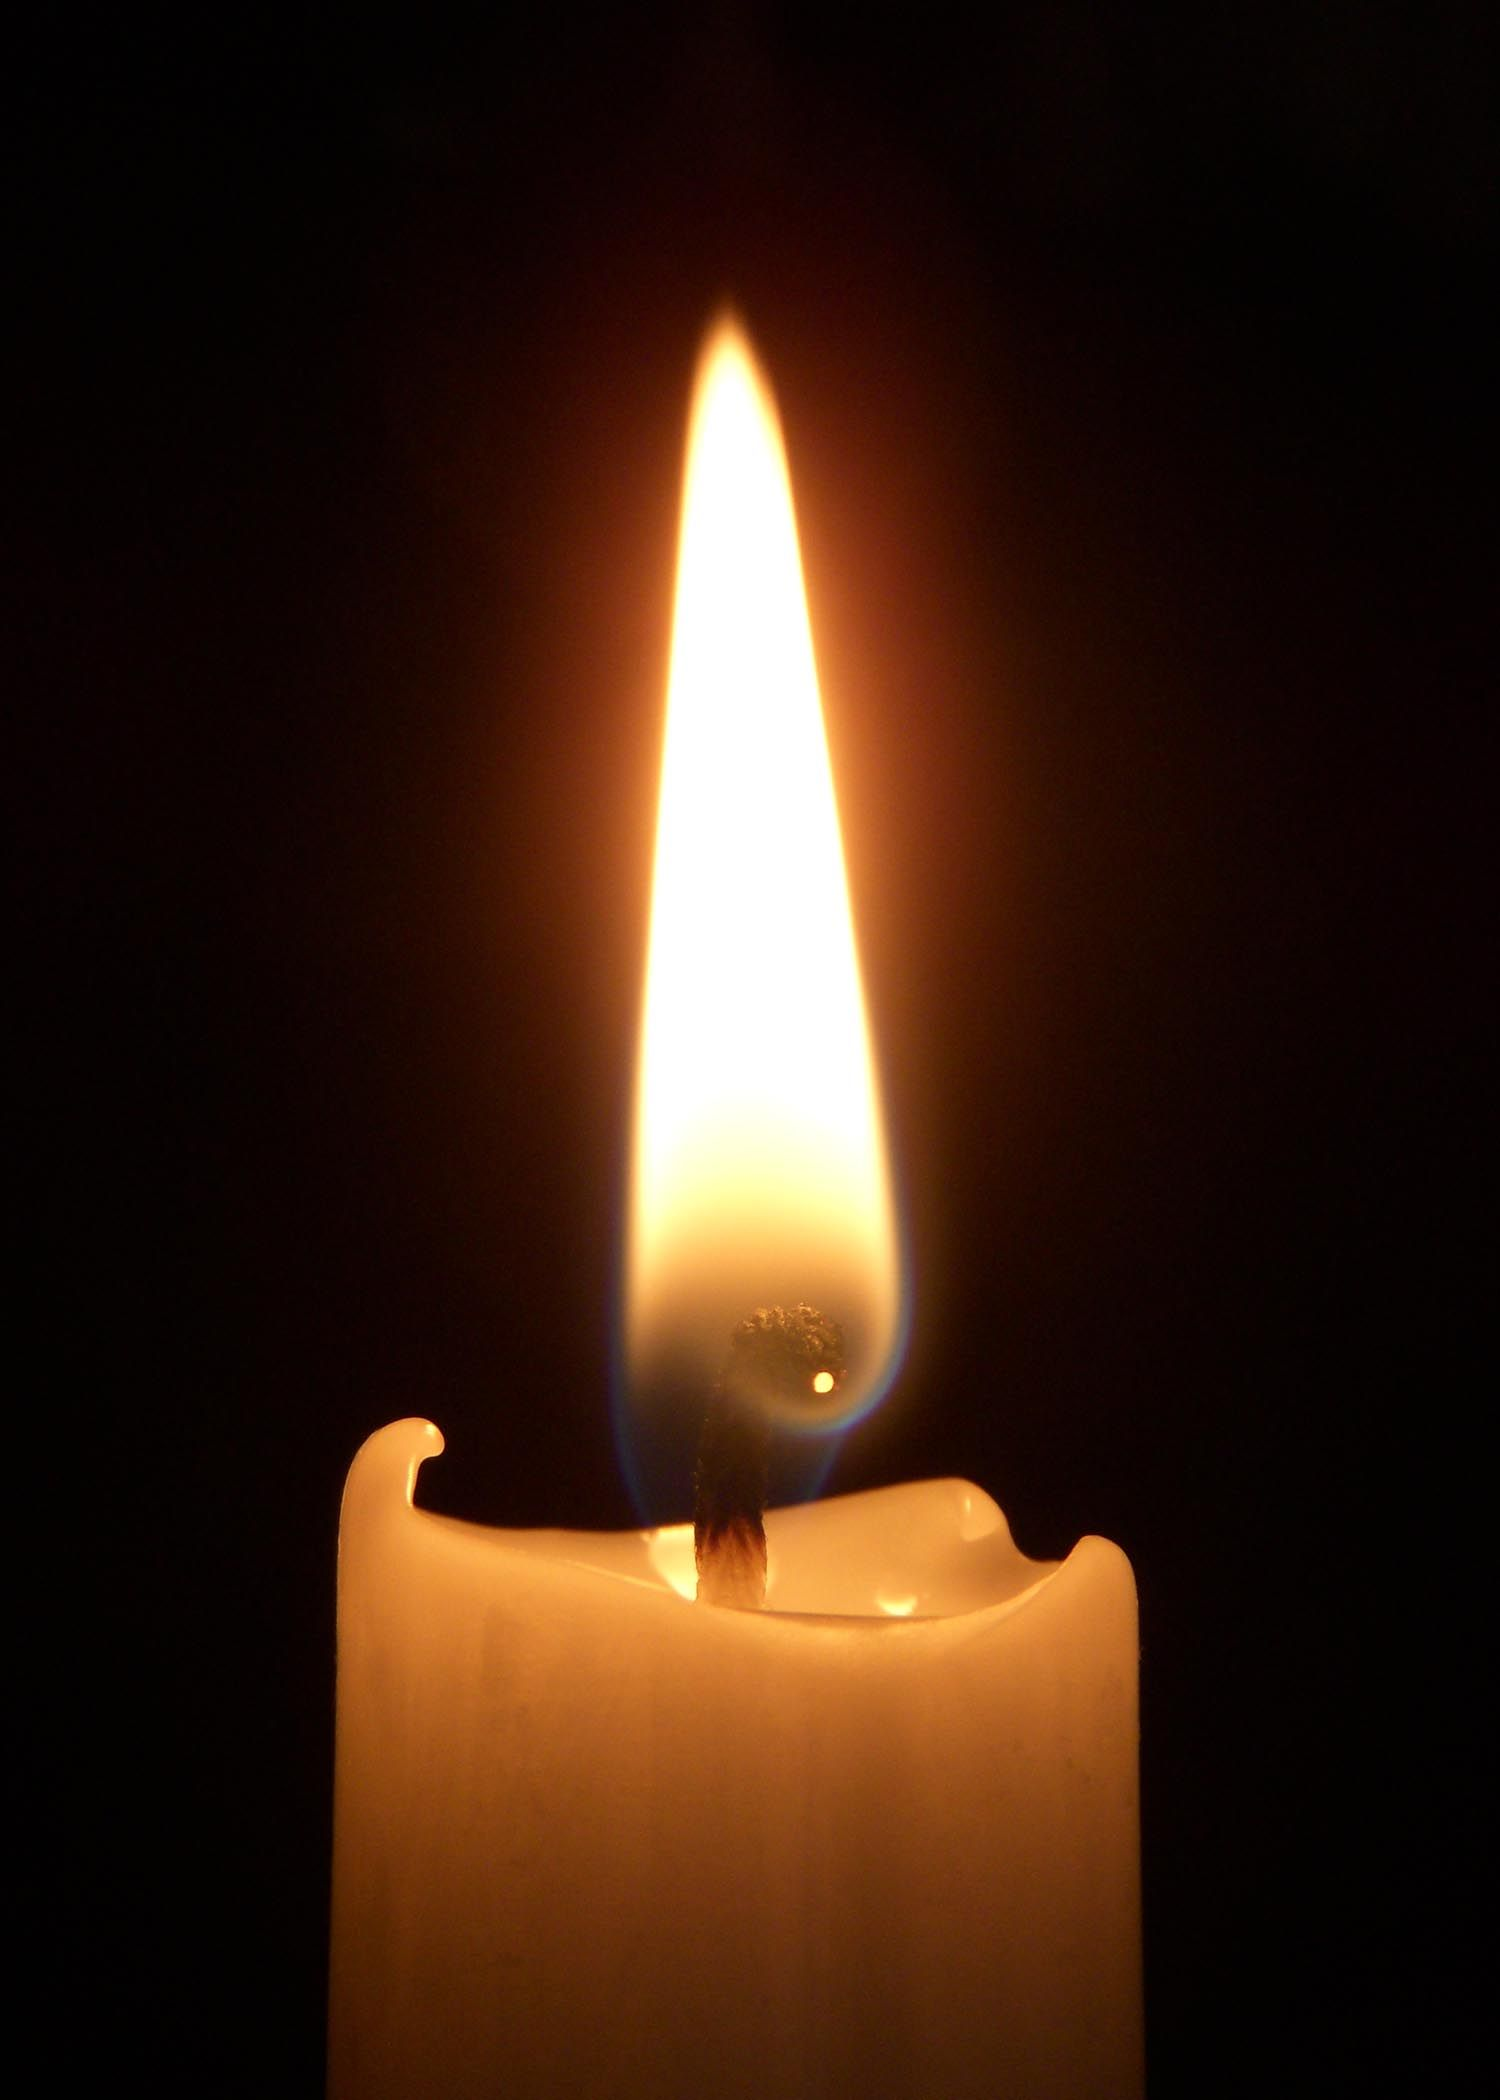 Pin On Heroes Wallpaper candle close up flame dark